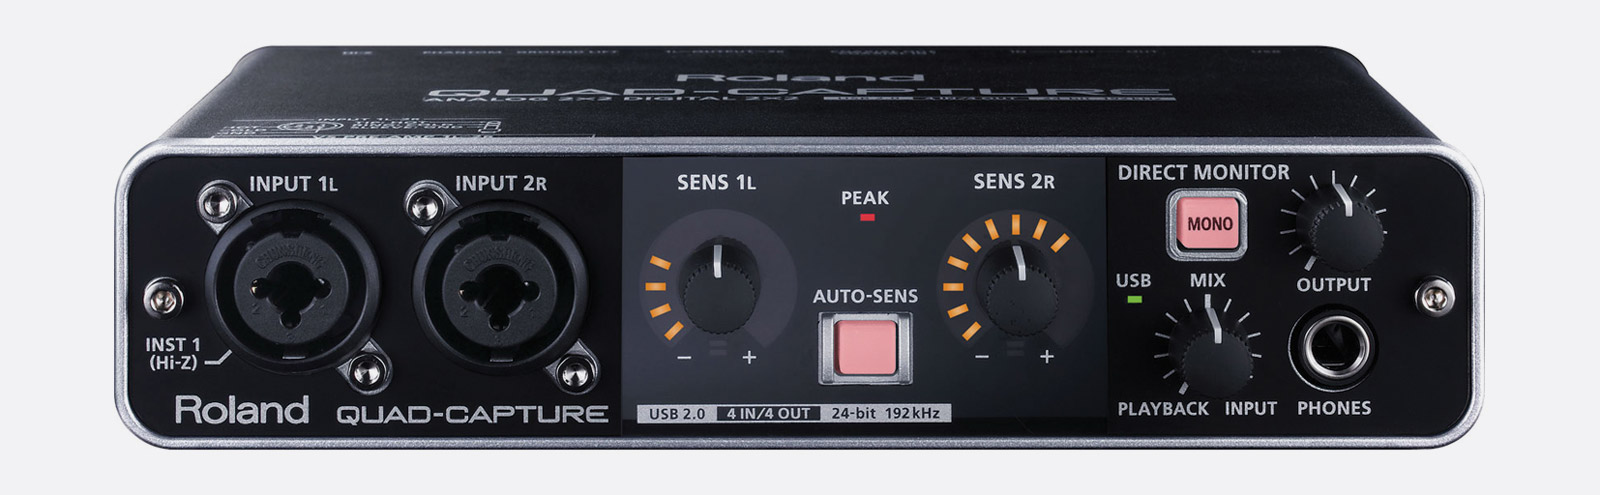 Roland Ua 55 Quad Capture Usb Audio Interface 2x Mic Instrument In Stereo Mixer For Microphone With 2 Channels S Pdif Midi I O Phantom